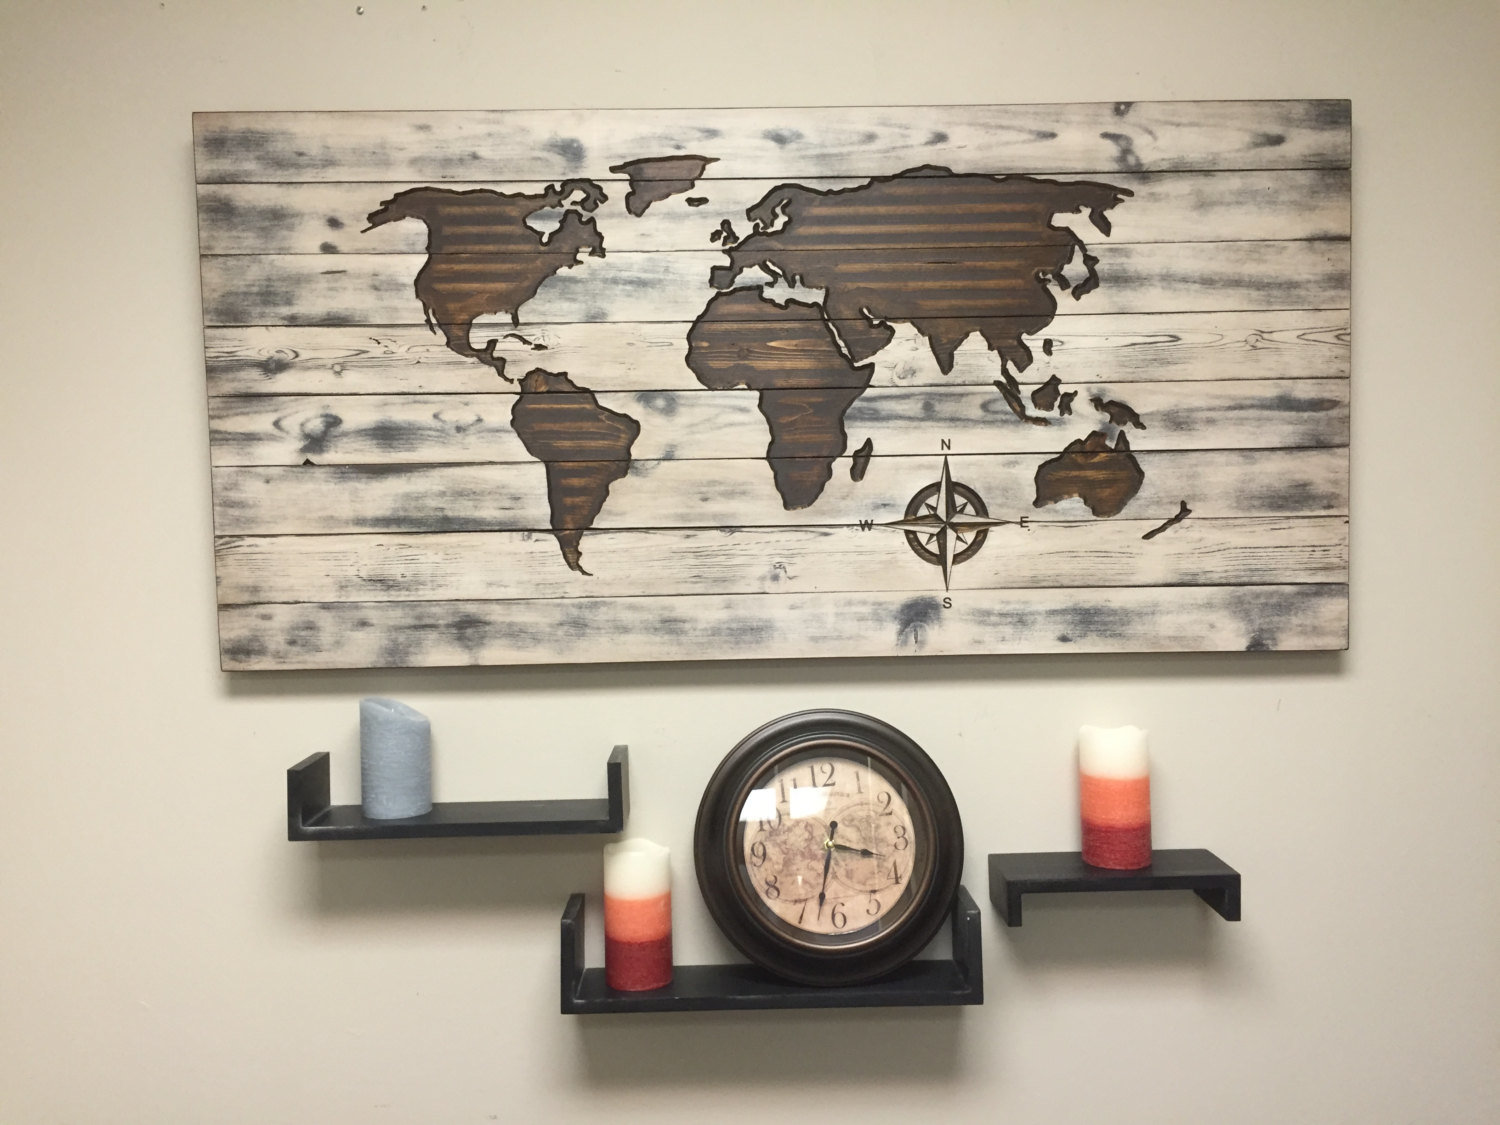 China world map art carved wooden wall decor china world map push china world map art carved wooden wall decor china world map push pin wall decor gumiabroncs Images